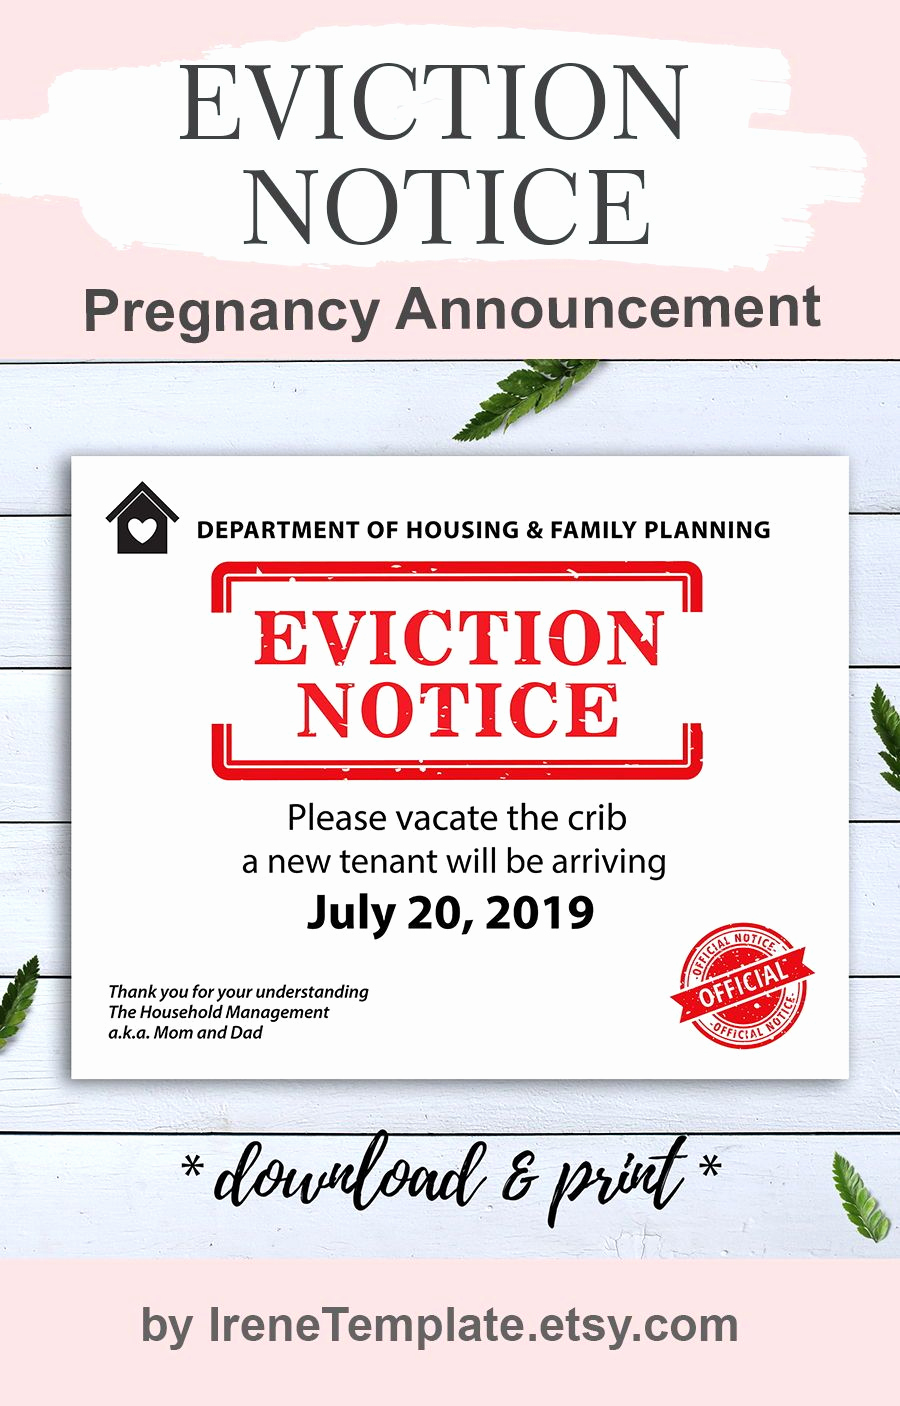 Baby Eviction Notice Template New Pin On Eviction Notice Pregnancy Announcement